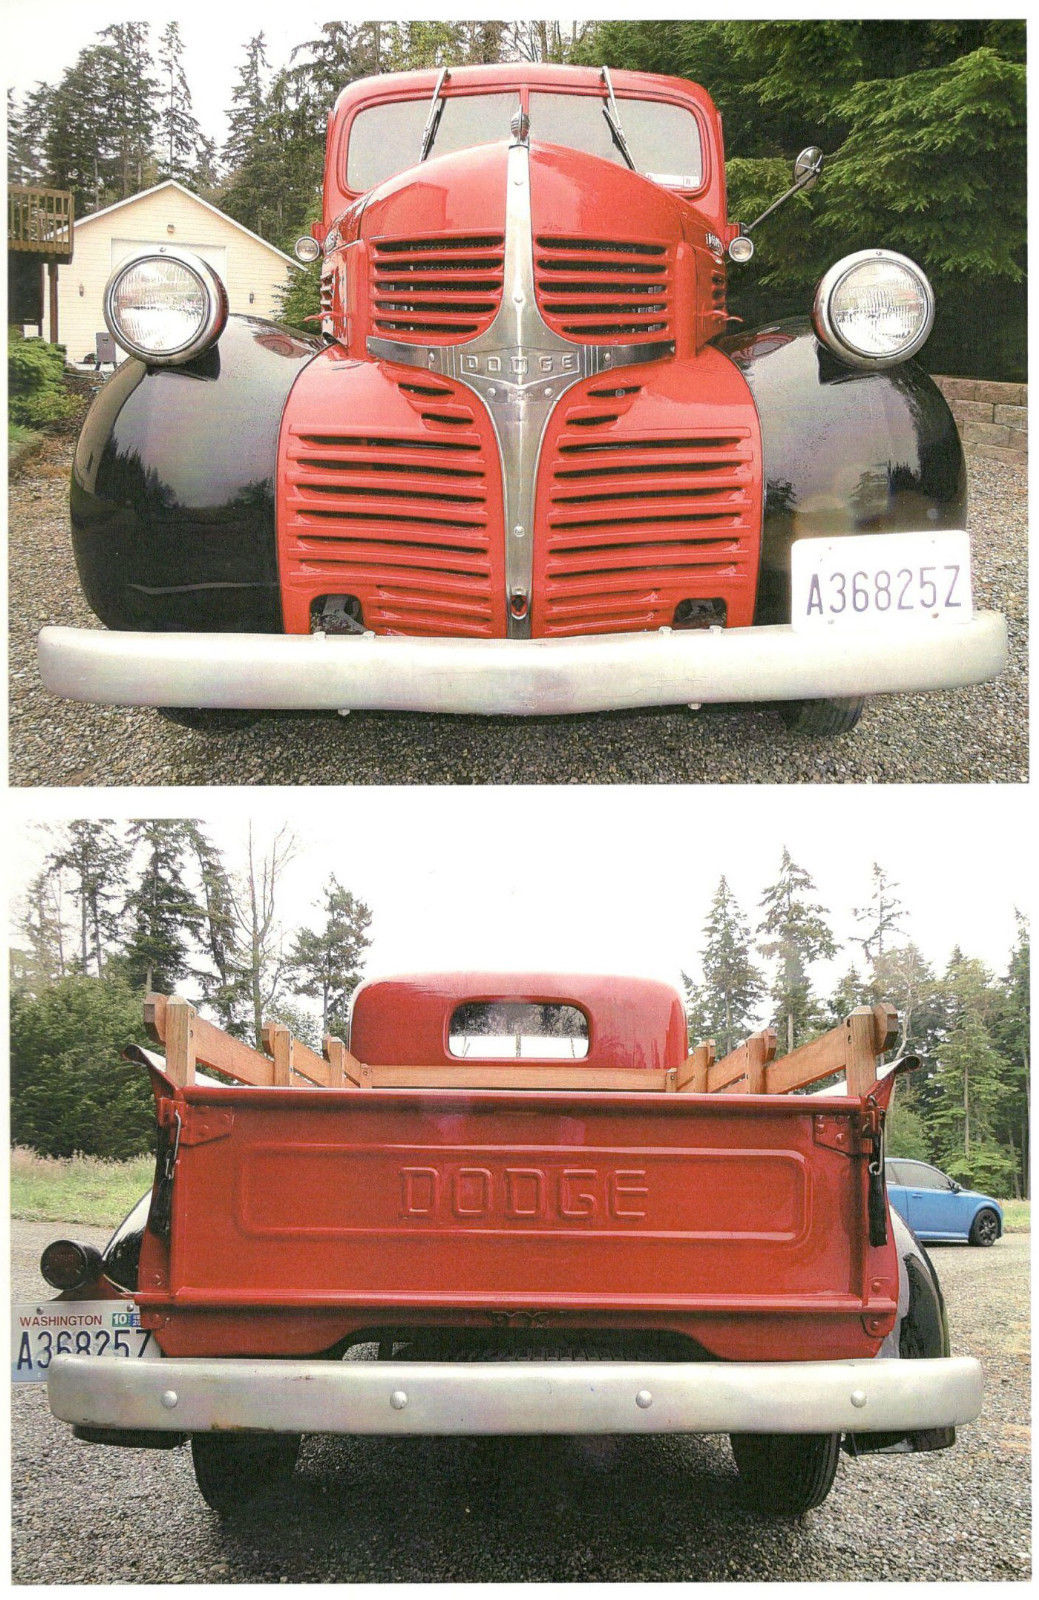 1947 Dodge Collector Pickup Truck 1 2 Ton Frame Off Restored To Original For Sale In Oak Harbor Washington United States For Sale Photos Technical Specifications Description